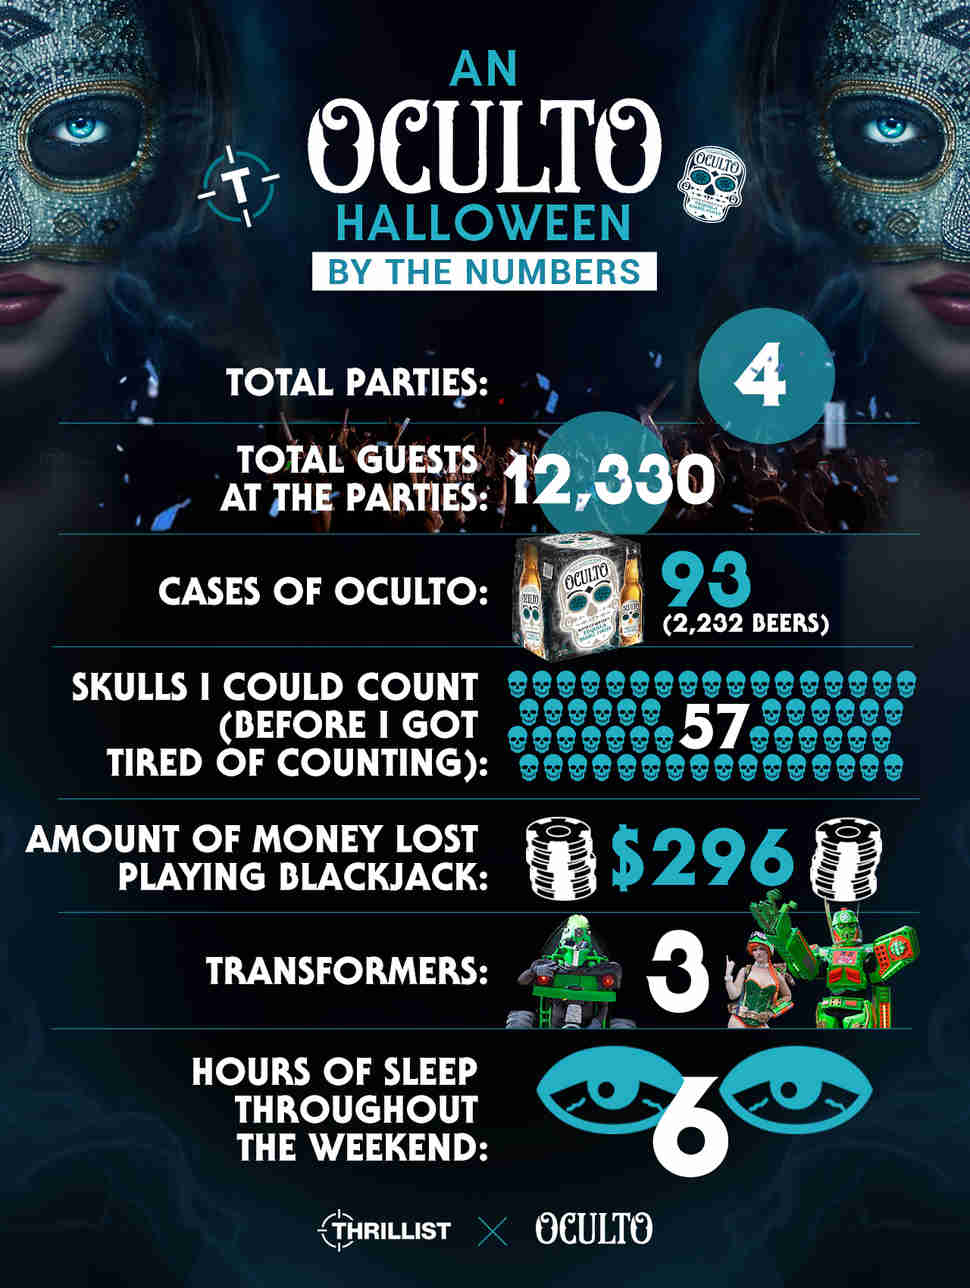 Oculto by the numbers